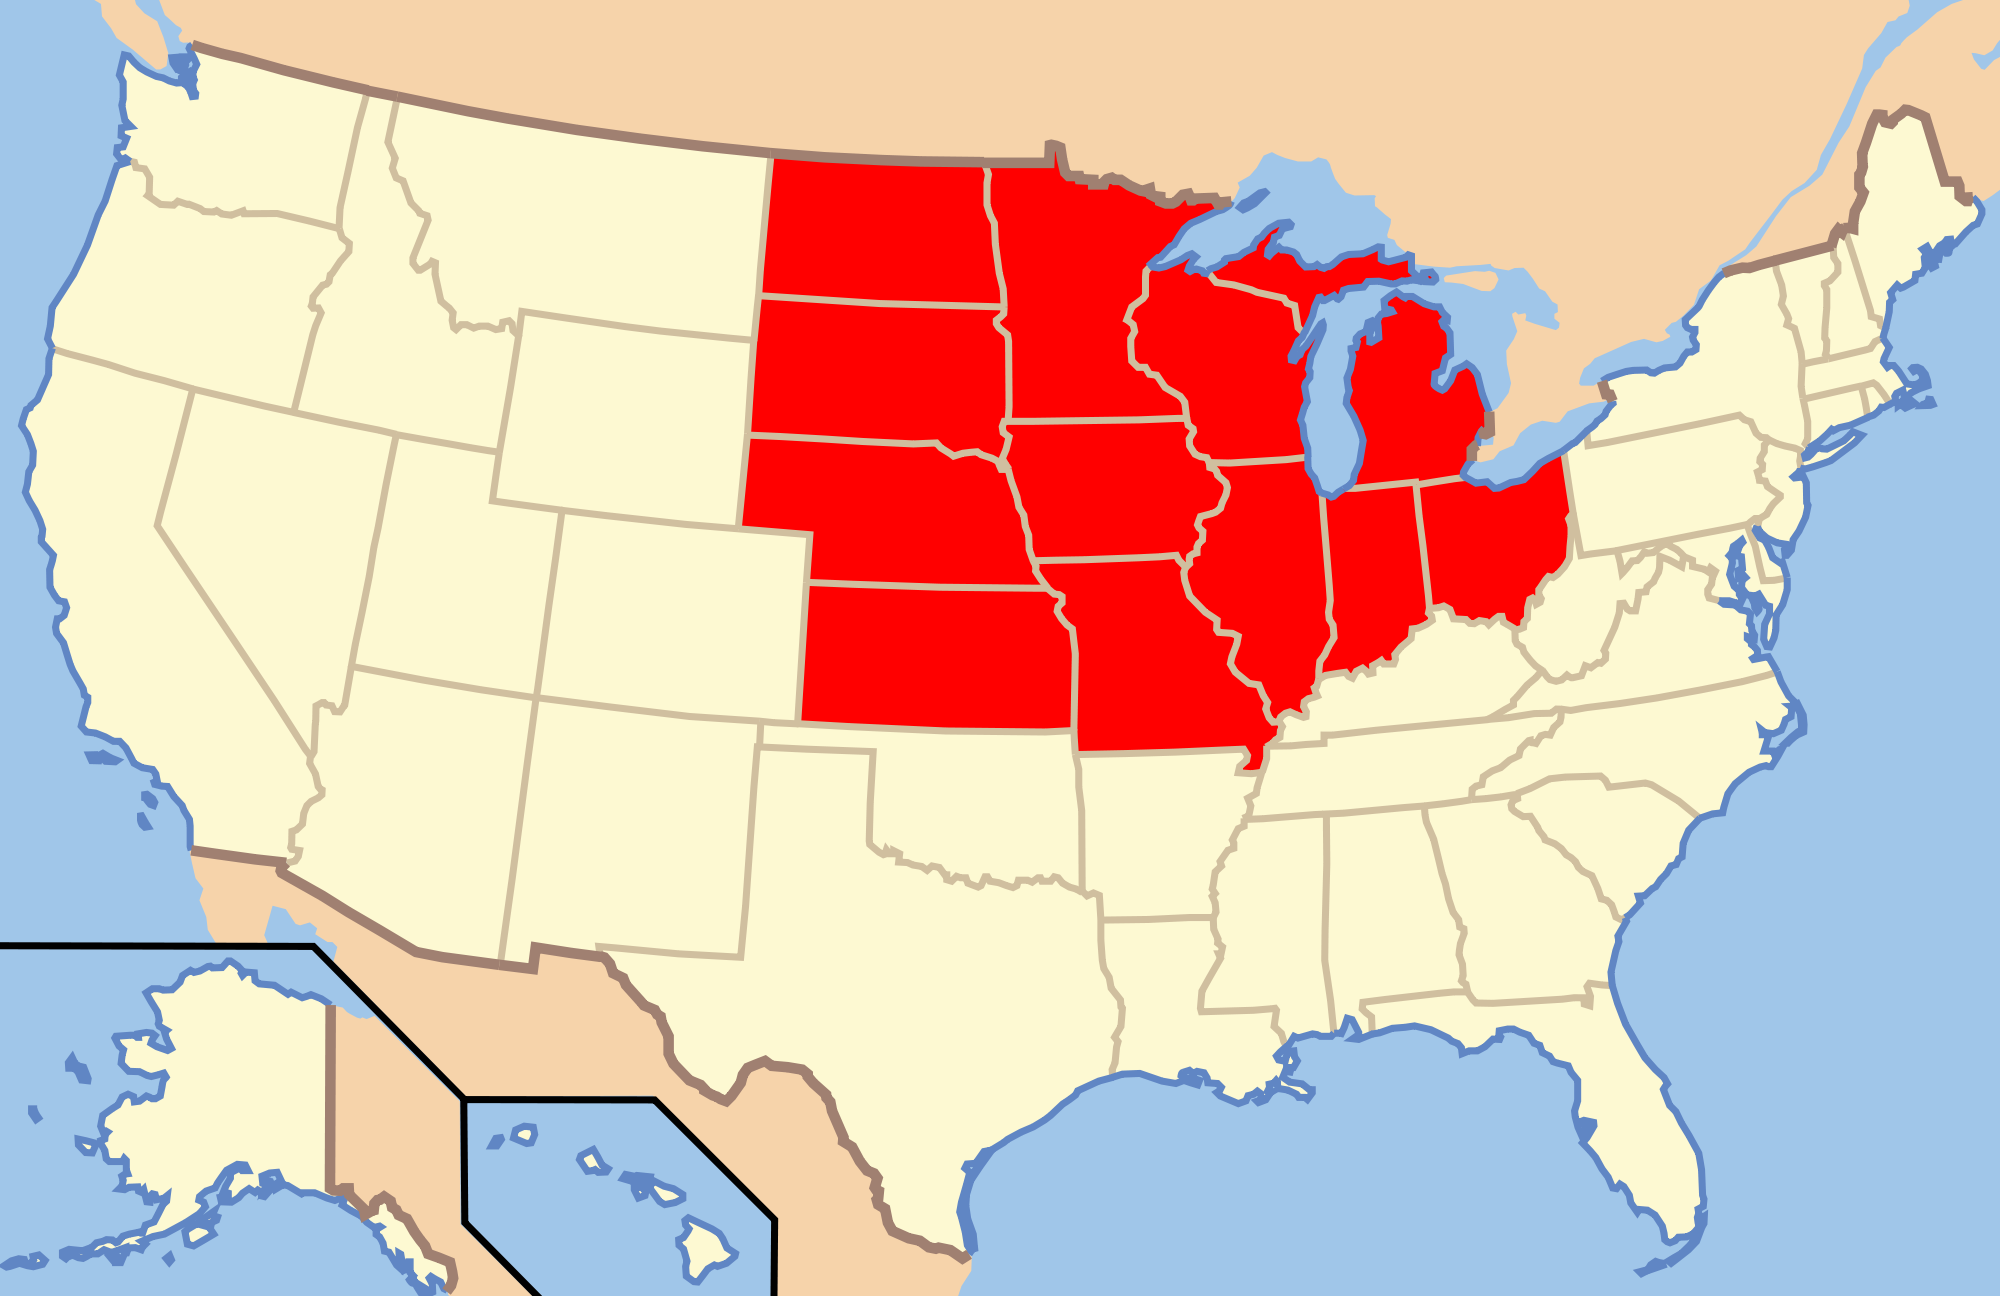 Filemap Of Usa Showing State Namespng Wikimedia Commons Printable United States Of America Map With